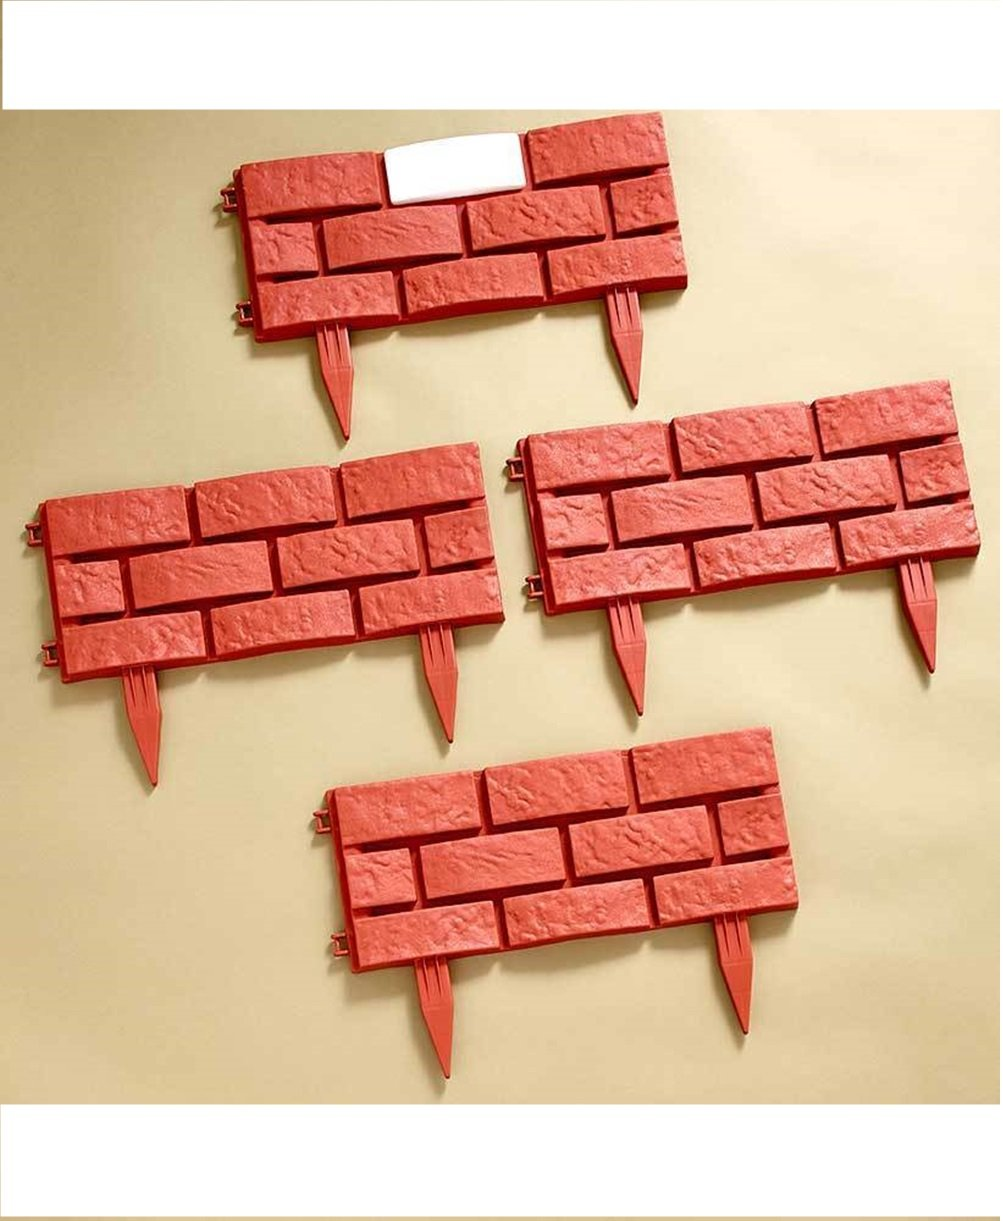 Pro-G 4 Panals Solar Lighted Brick-Look Border Removable Stakes Surround Gardent Tree Decor Edging-Yard